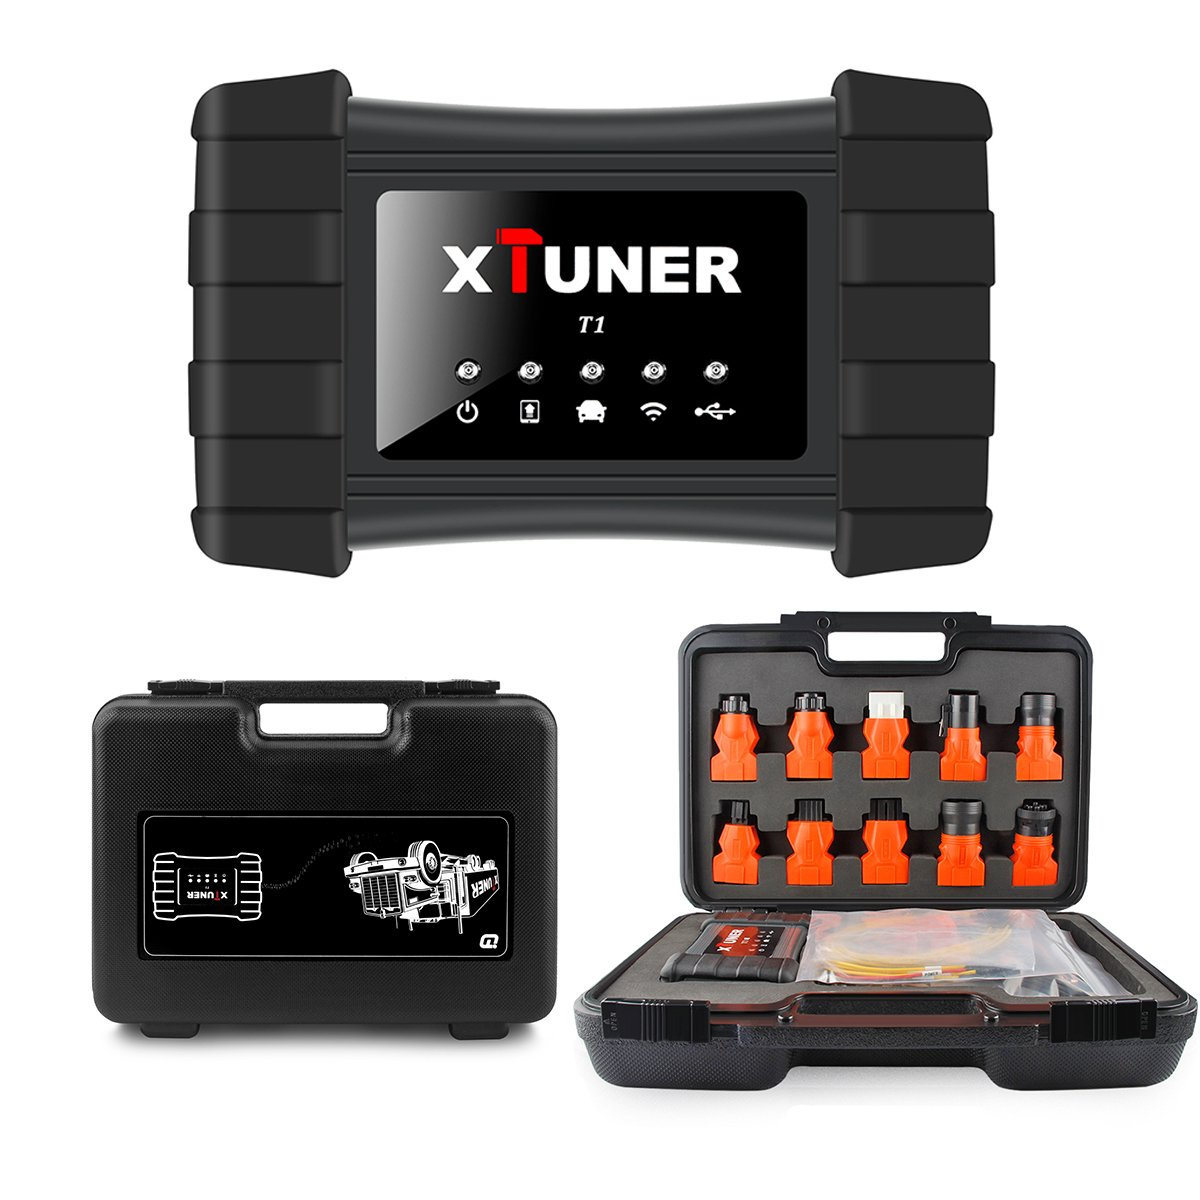 XTUNER T1 Professional Heavy Duty Truck Diagnostic Scan